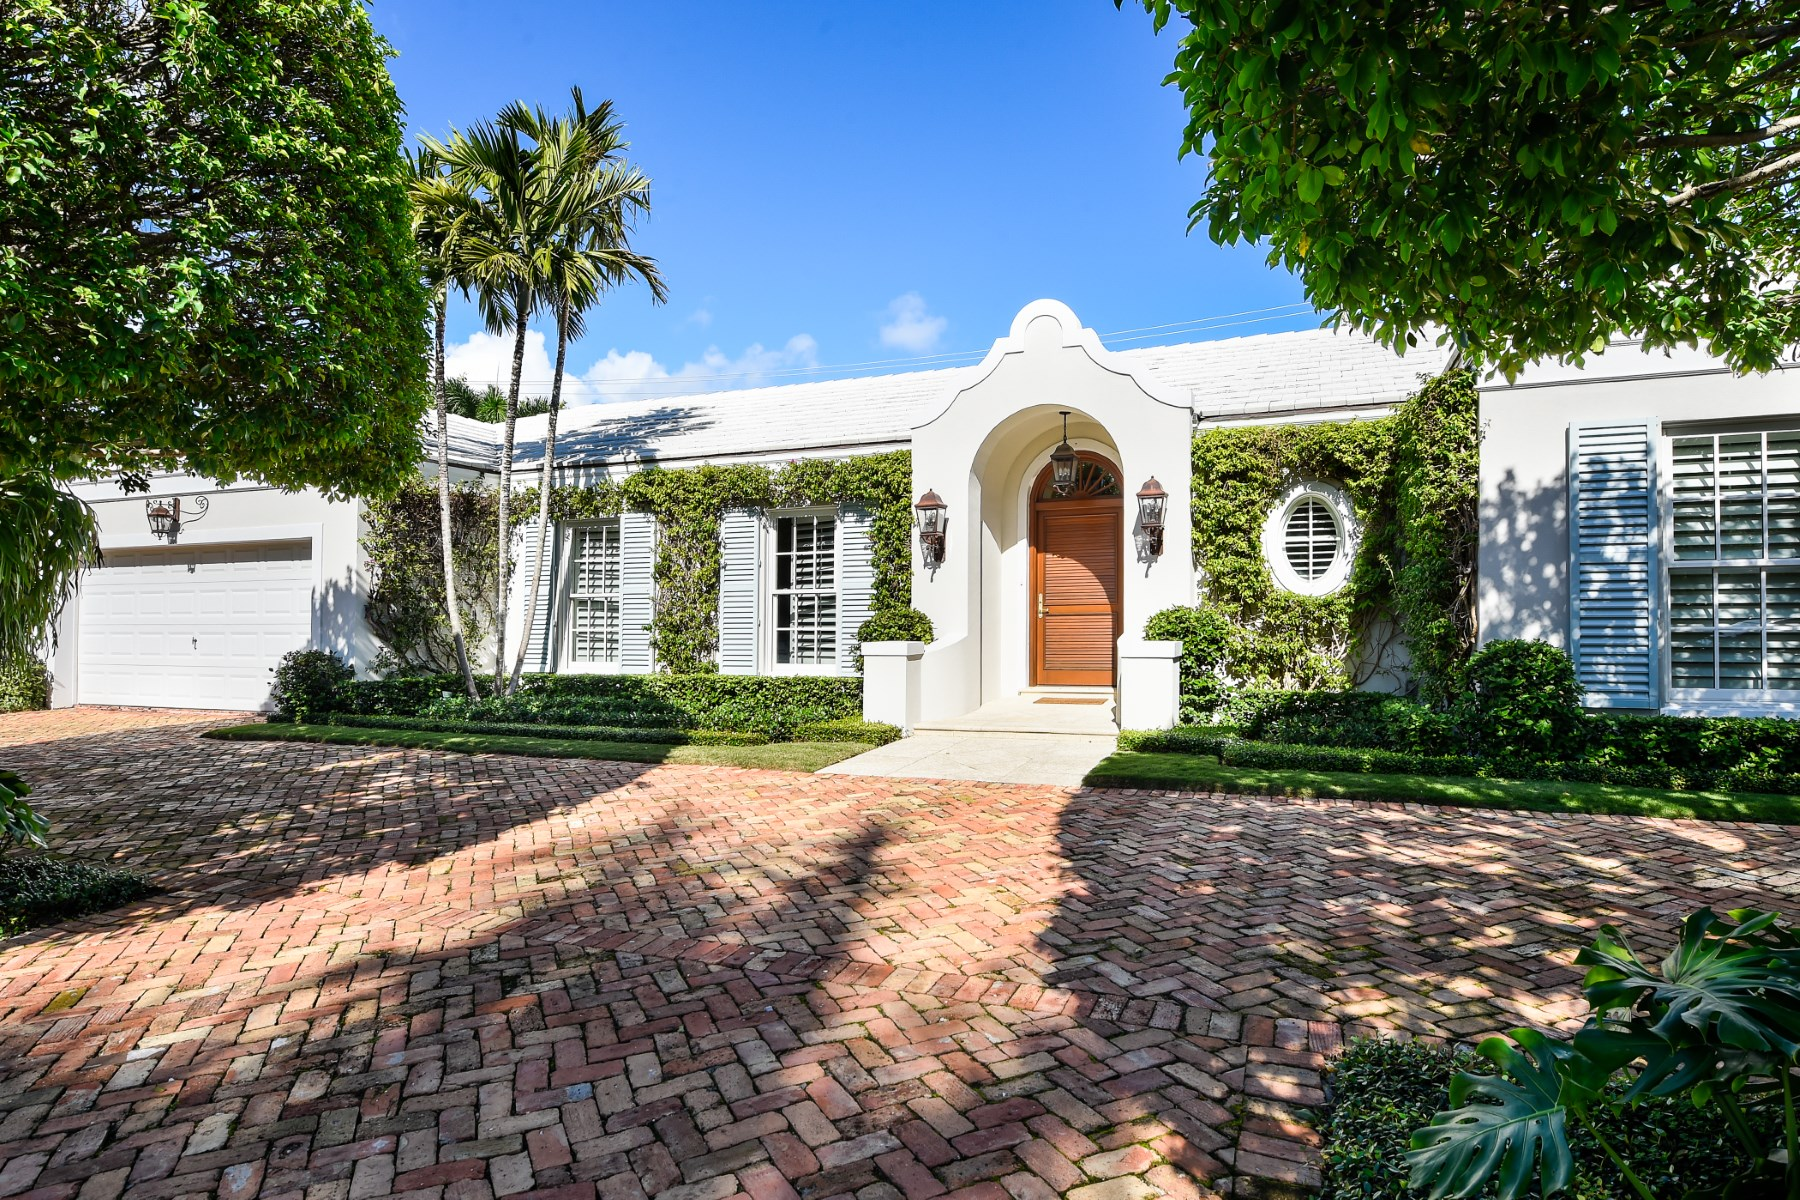 Villa per Vendita alle ore Palm Beach Perfection 273 List Rd North End, Palm Beach, Florida, 33480 Stati Uniti